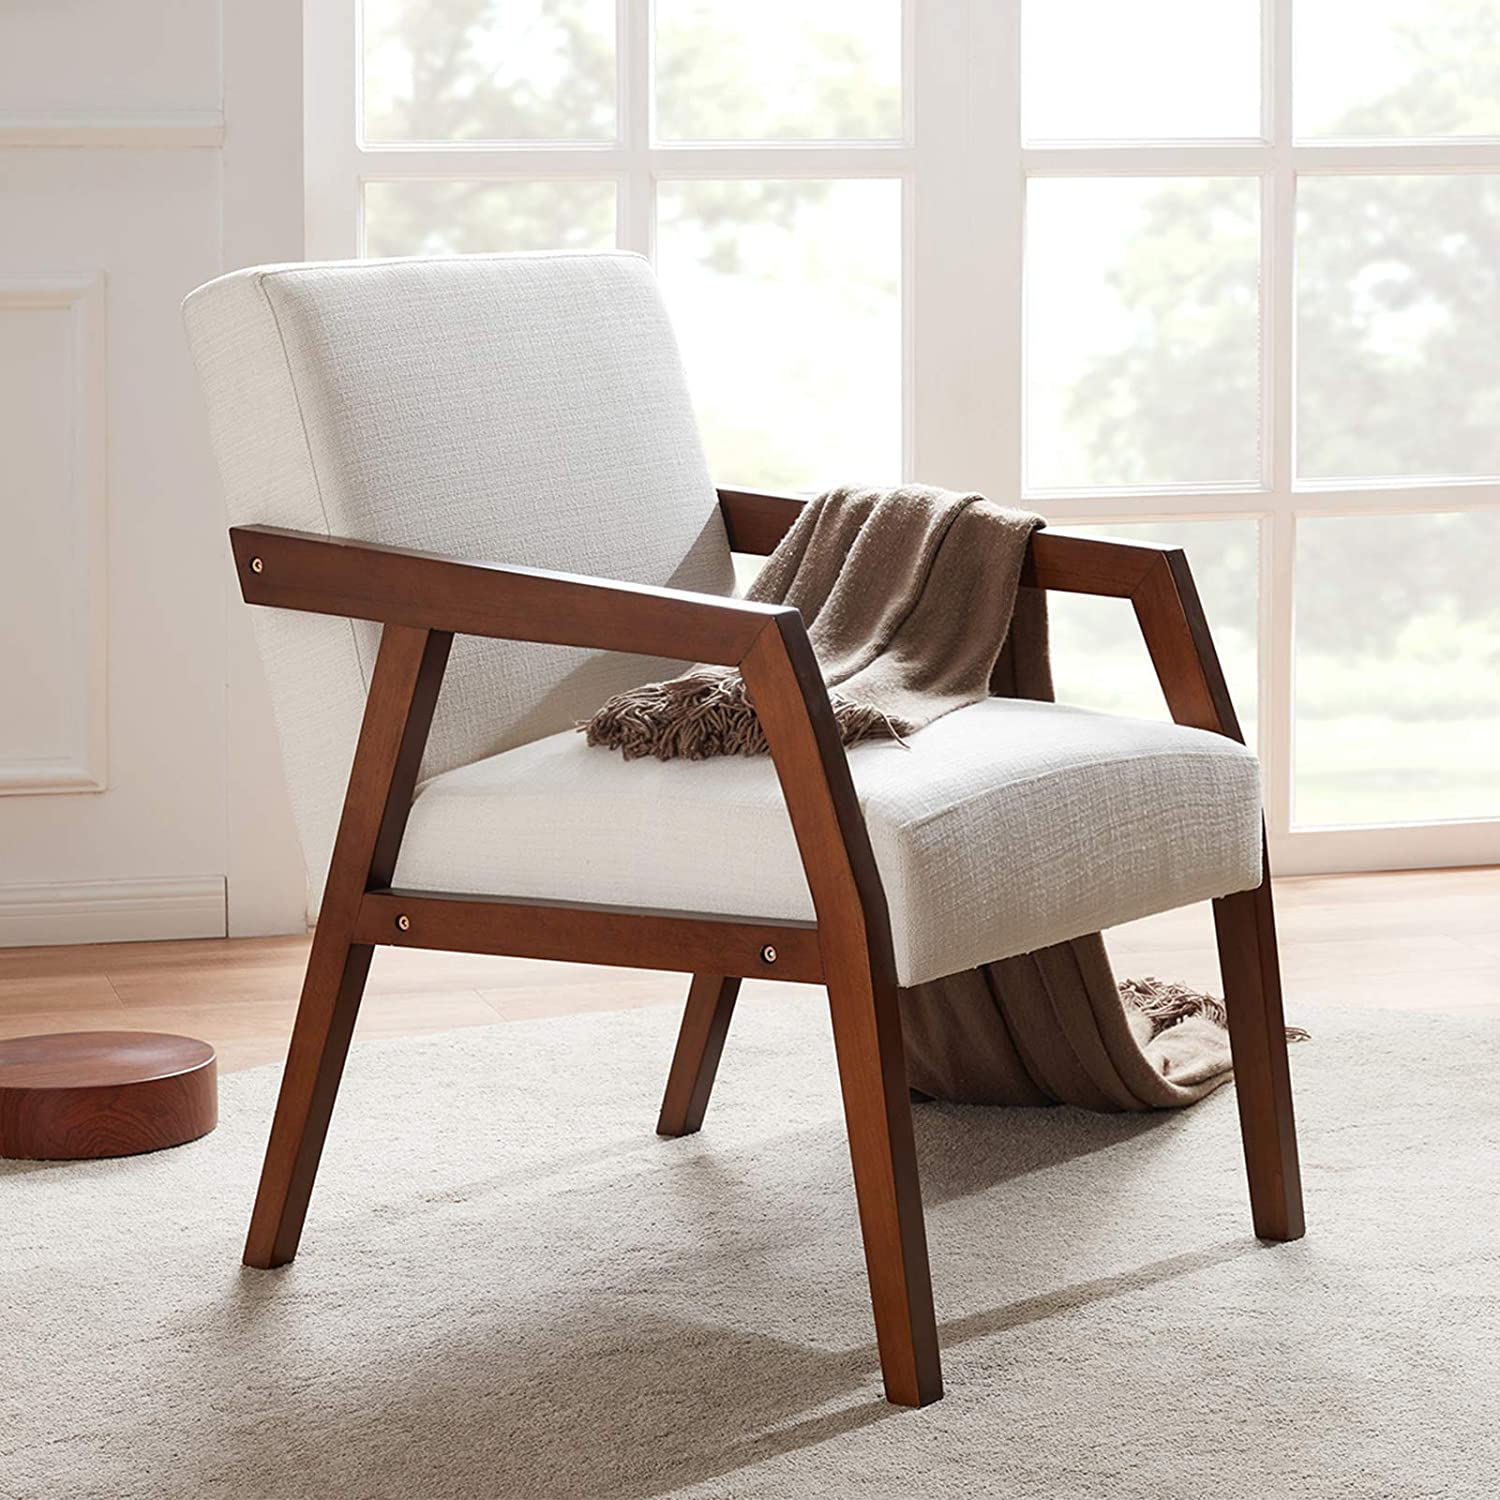 Huimo Arm Chair Accent, Lounge Chairs With Wooden Arms